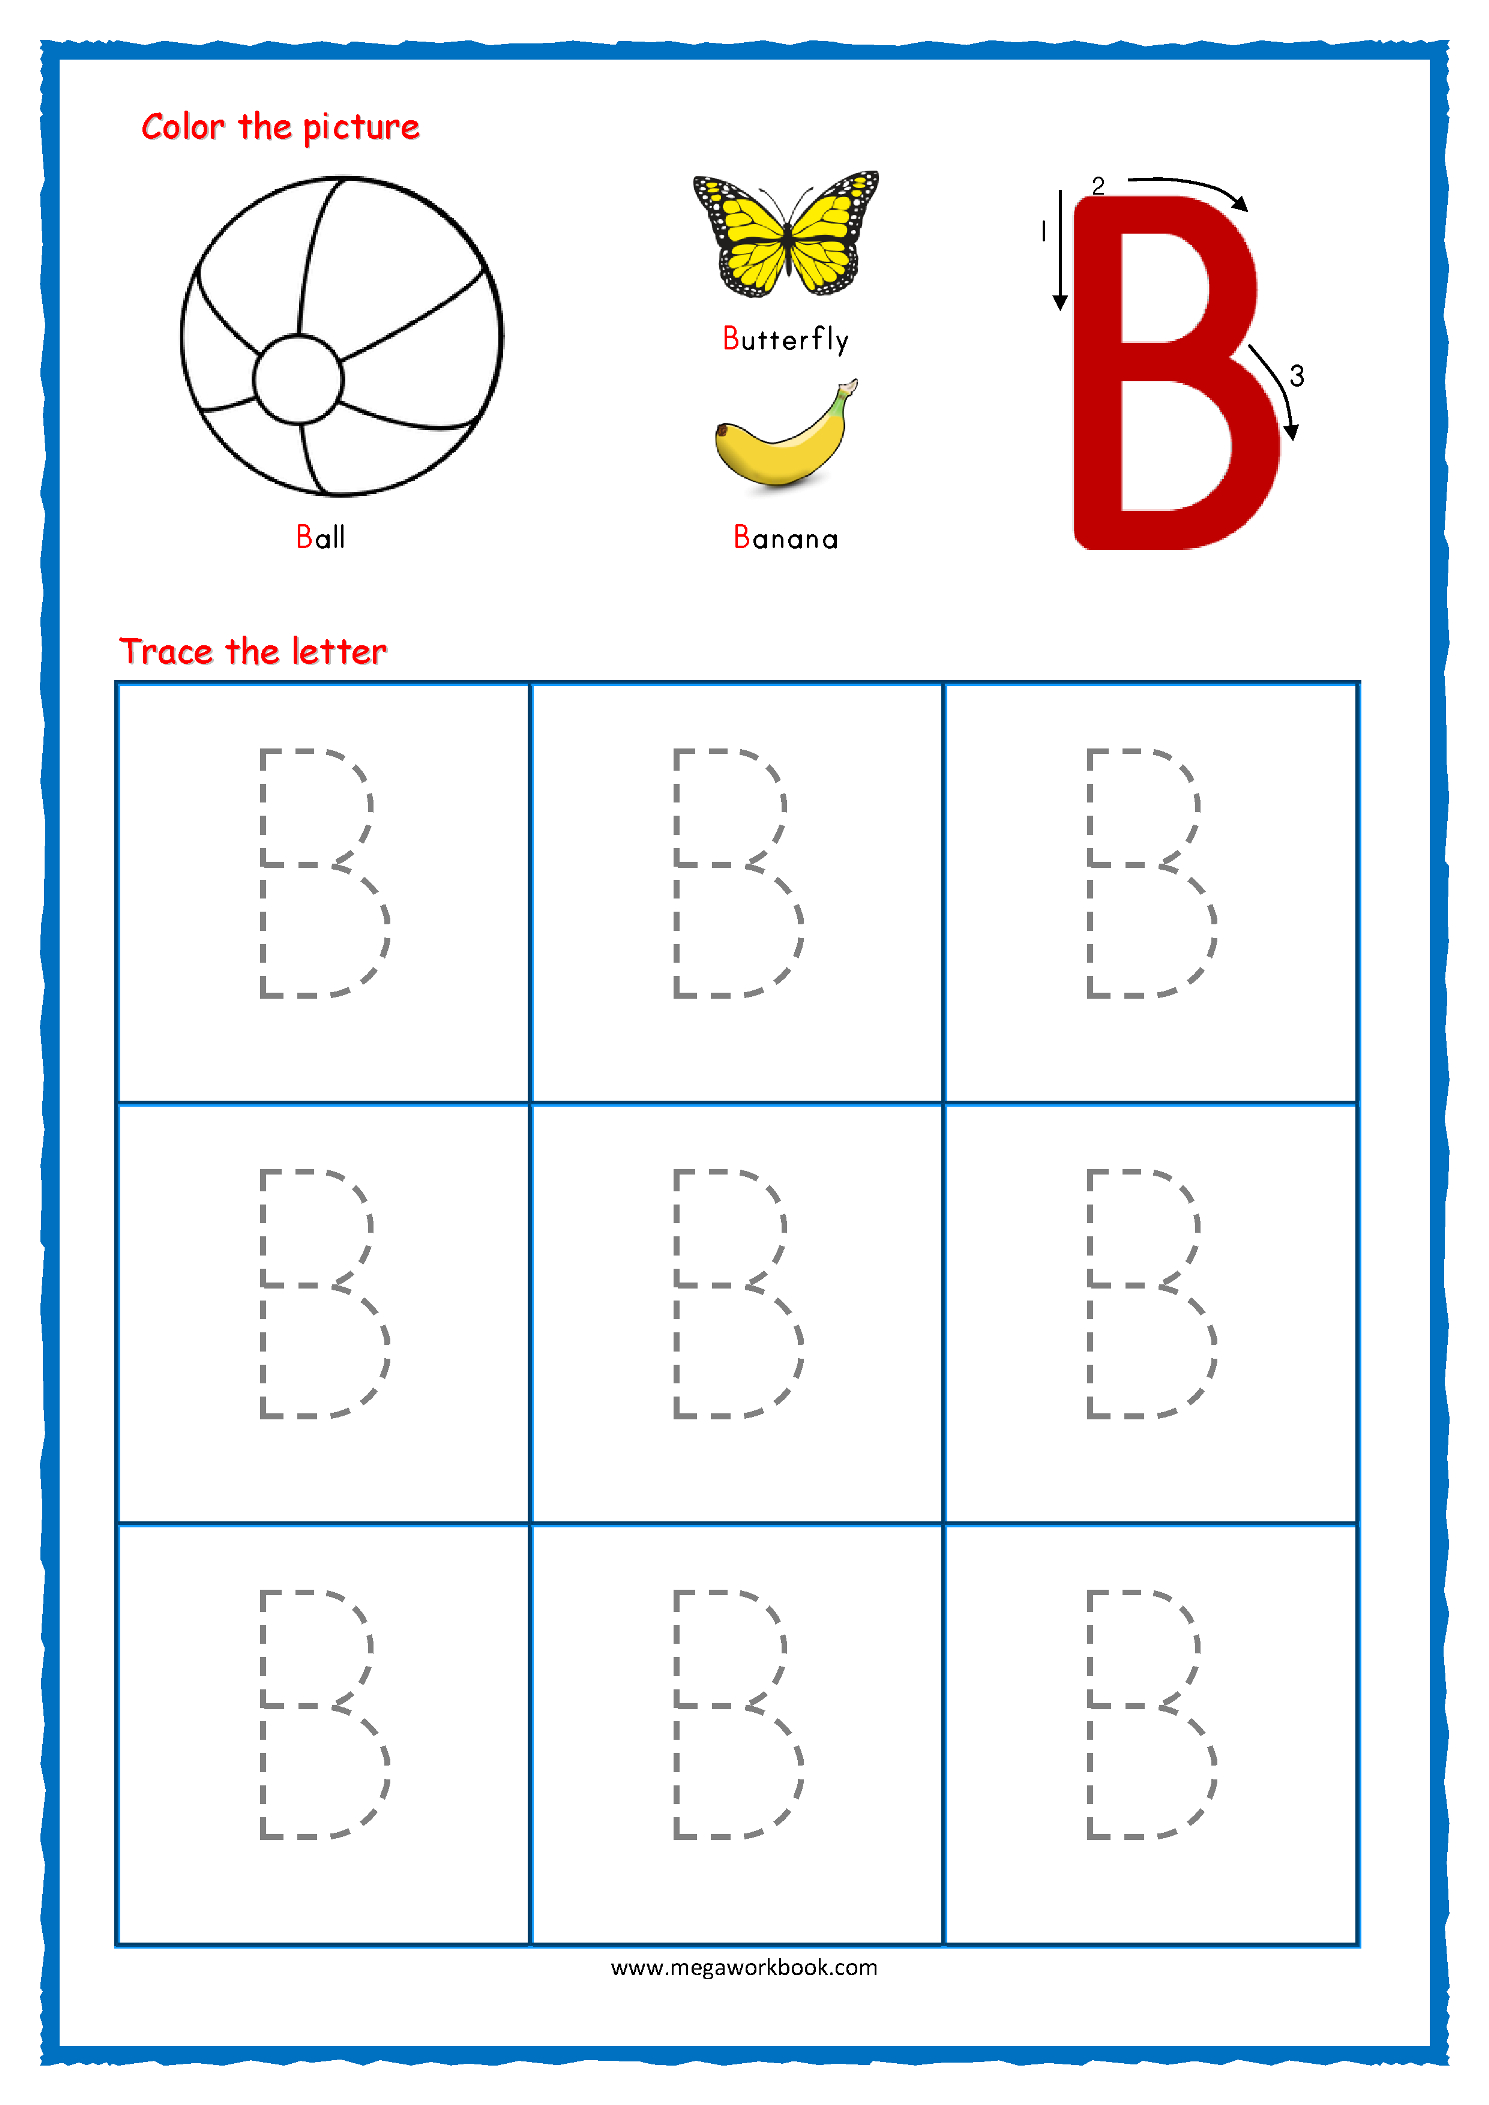 Coloring Book : Letter Tracingts Free Printable Coloring within Tracing Letters Worksheets Free